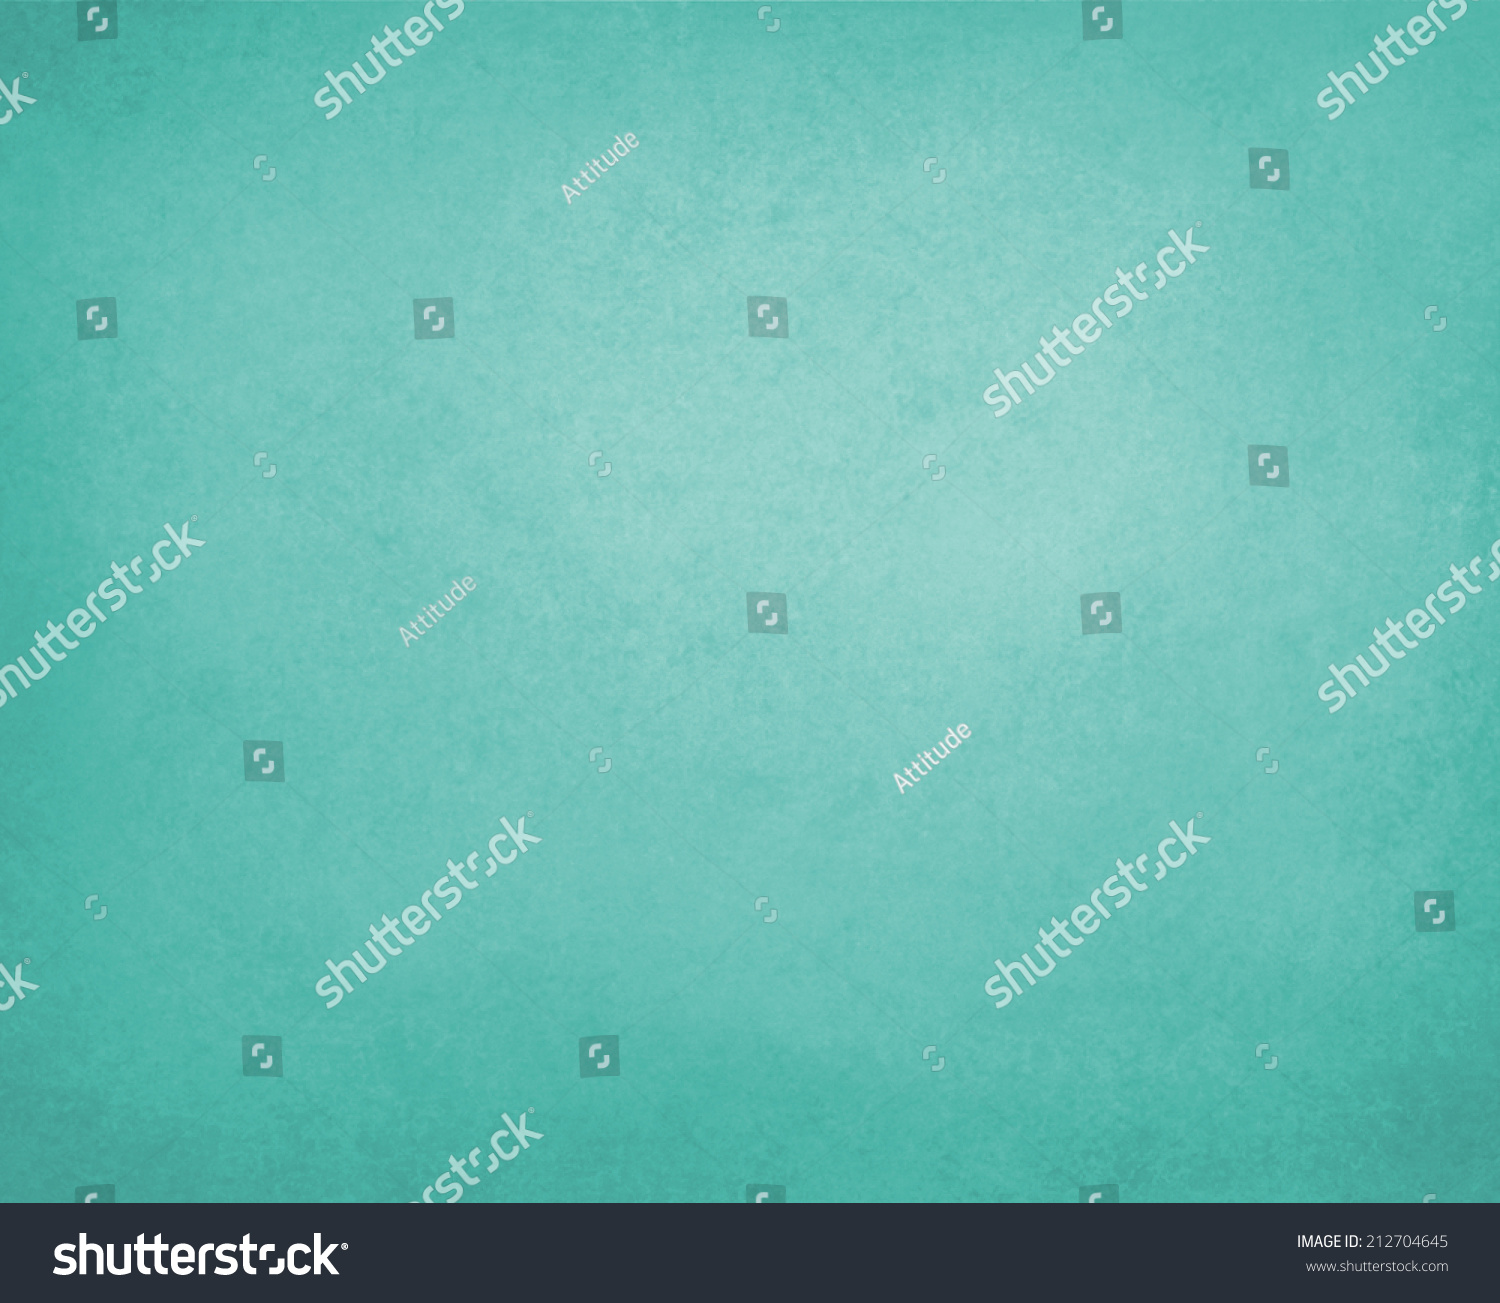 Soft Green Color Teal Blue Green Background Paper Vintage Stock Illustration